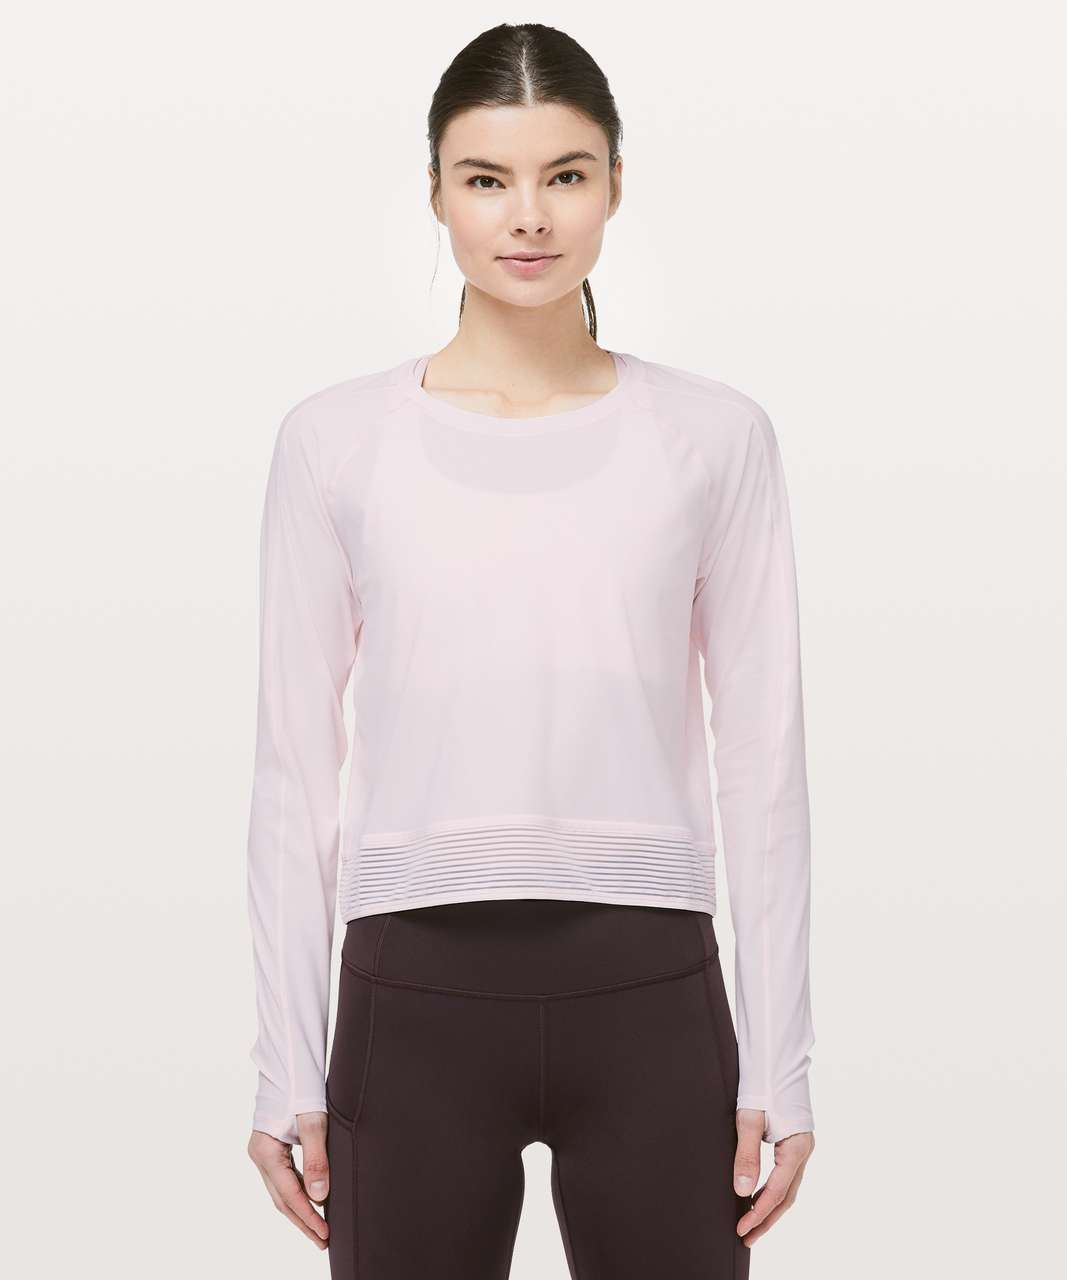 Lululemon Stripe In Stride Long Sleeve - Pink Glow